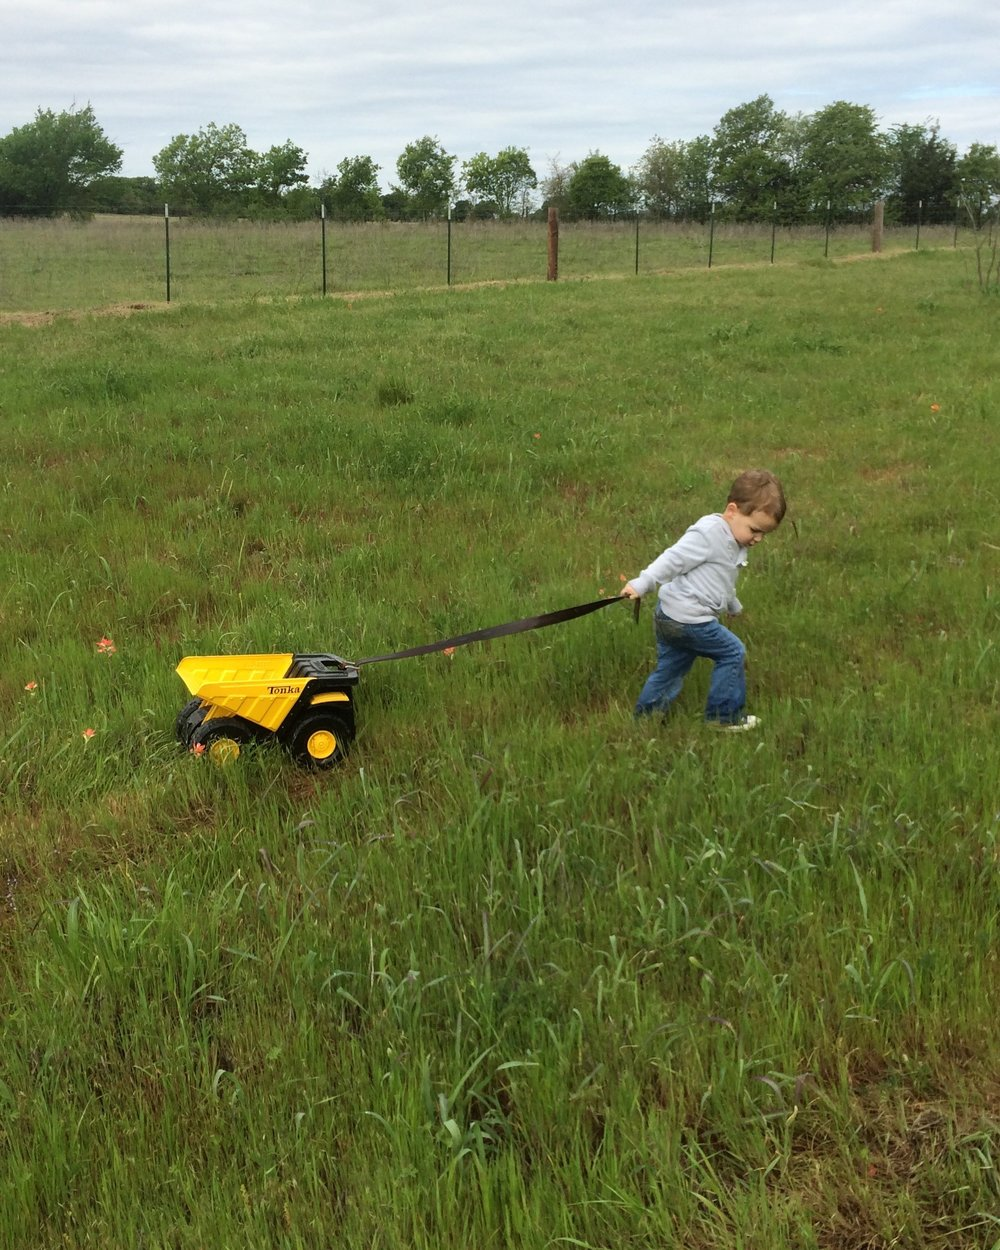 Dr. Anderson's grandson enjoying nature and Tonka trucks.